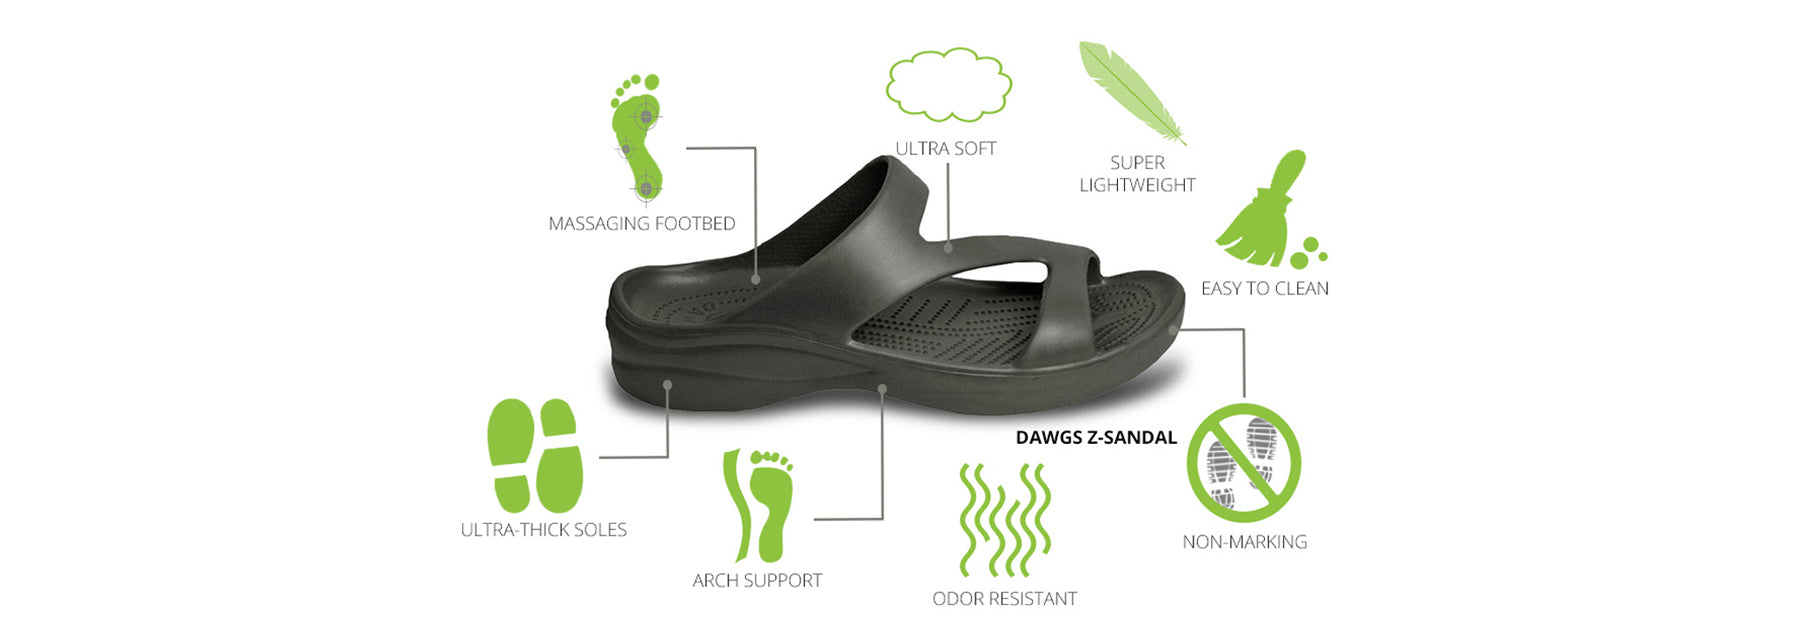 9246cd1b86f DAWGS Footwear Official Site | Shoes, Sandals, Boots — CANADA DAWGS